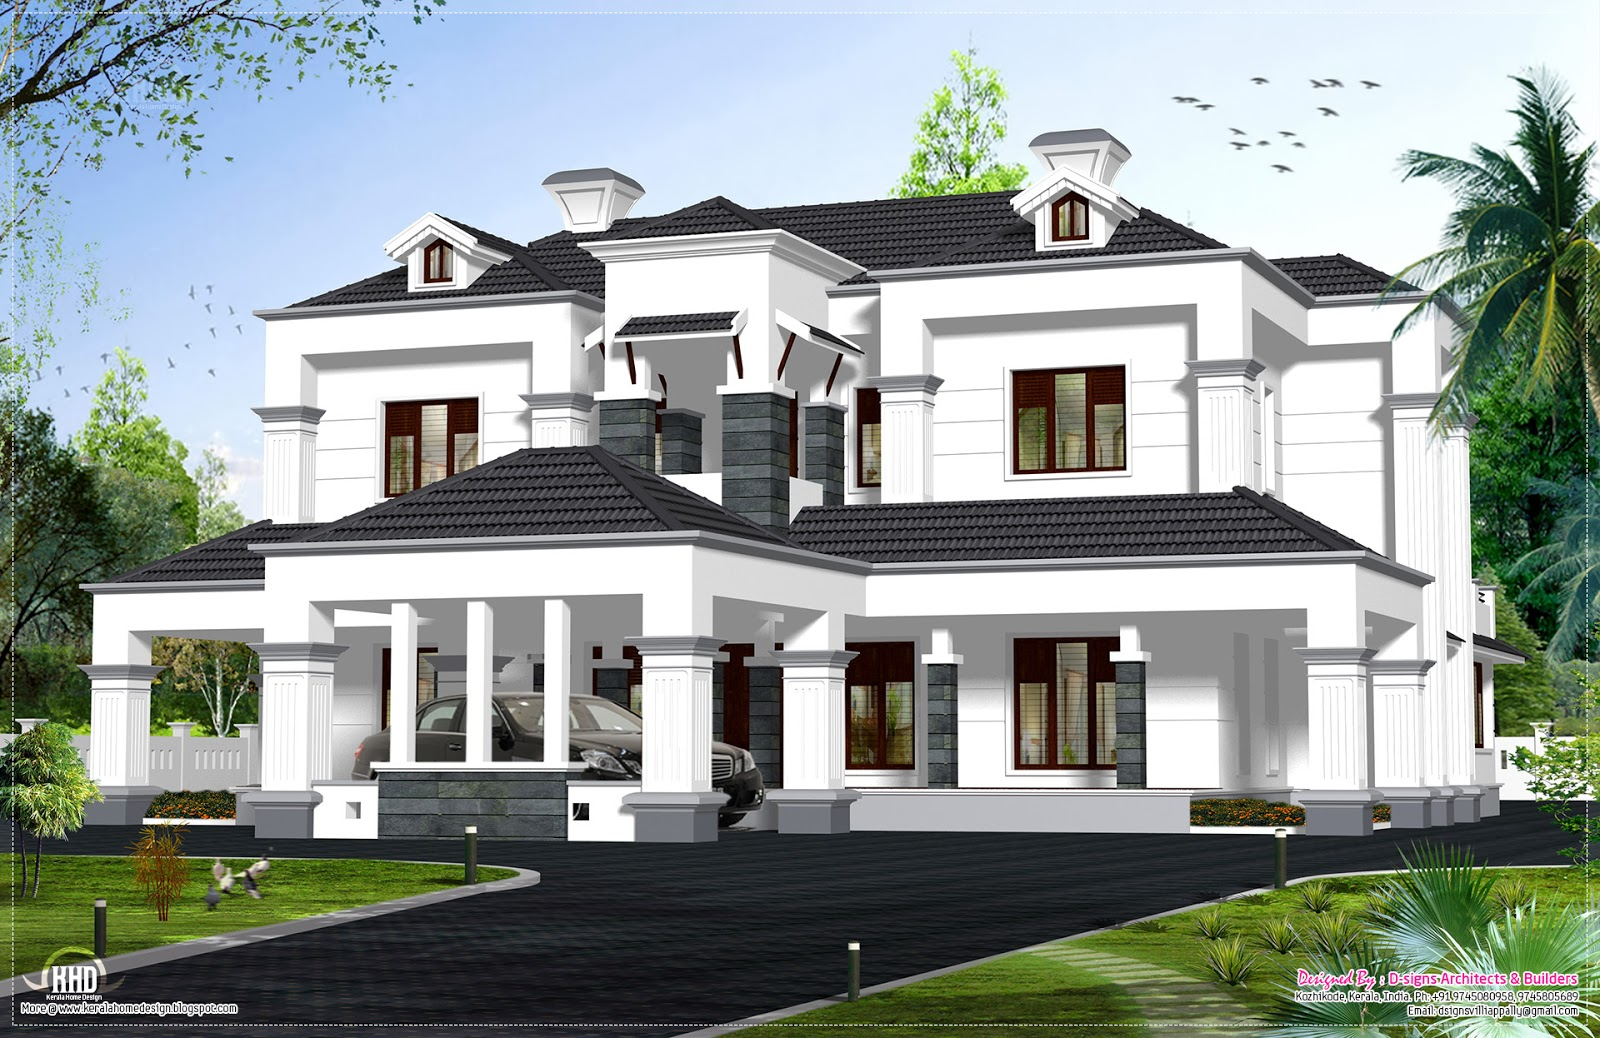 Victorian model house exterior kerala home design and for Model house design with floor plan